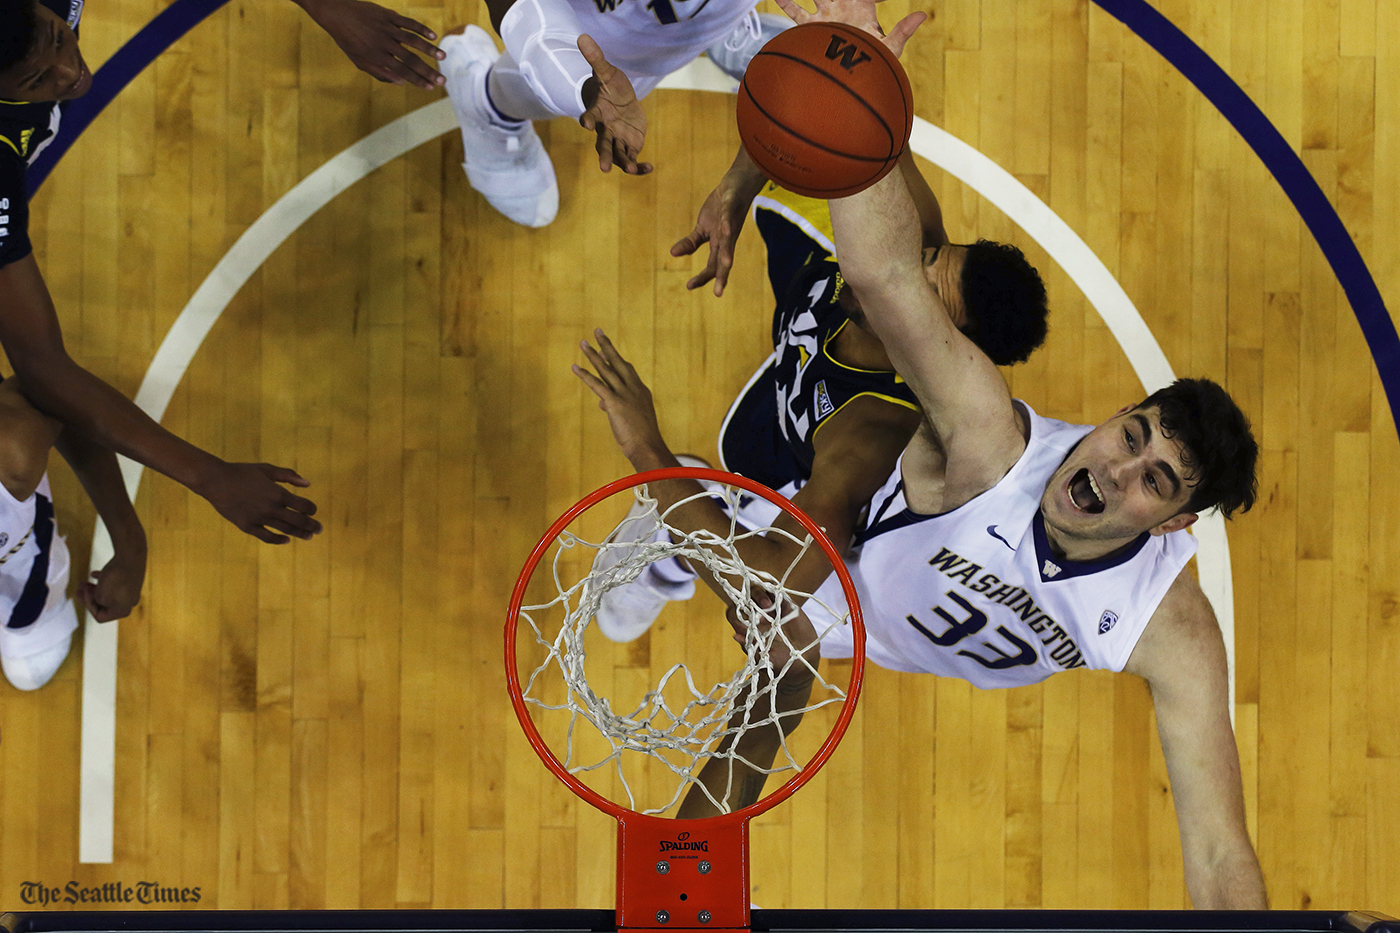 Washington Huskies forward Sam Timmins (33) goes up for a contested rebound during their game against Northern Arizona at the Hec Edmundson Pavilion on Sunday, November 20, 2016. The Huskies came out strong and ended stronger defeating the Lumberjacks 92-58.